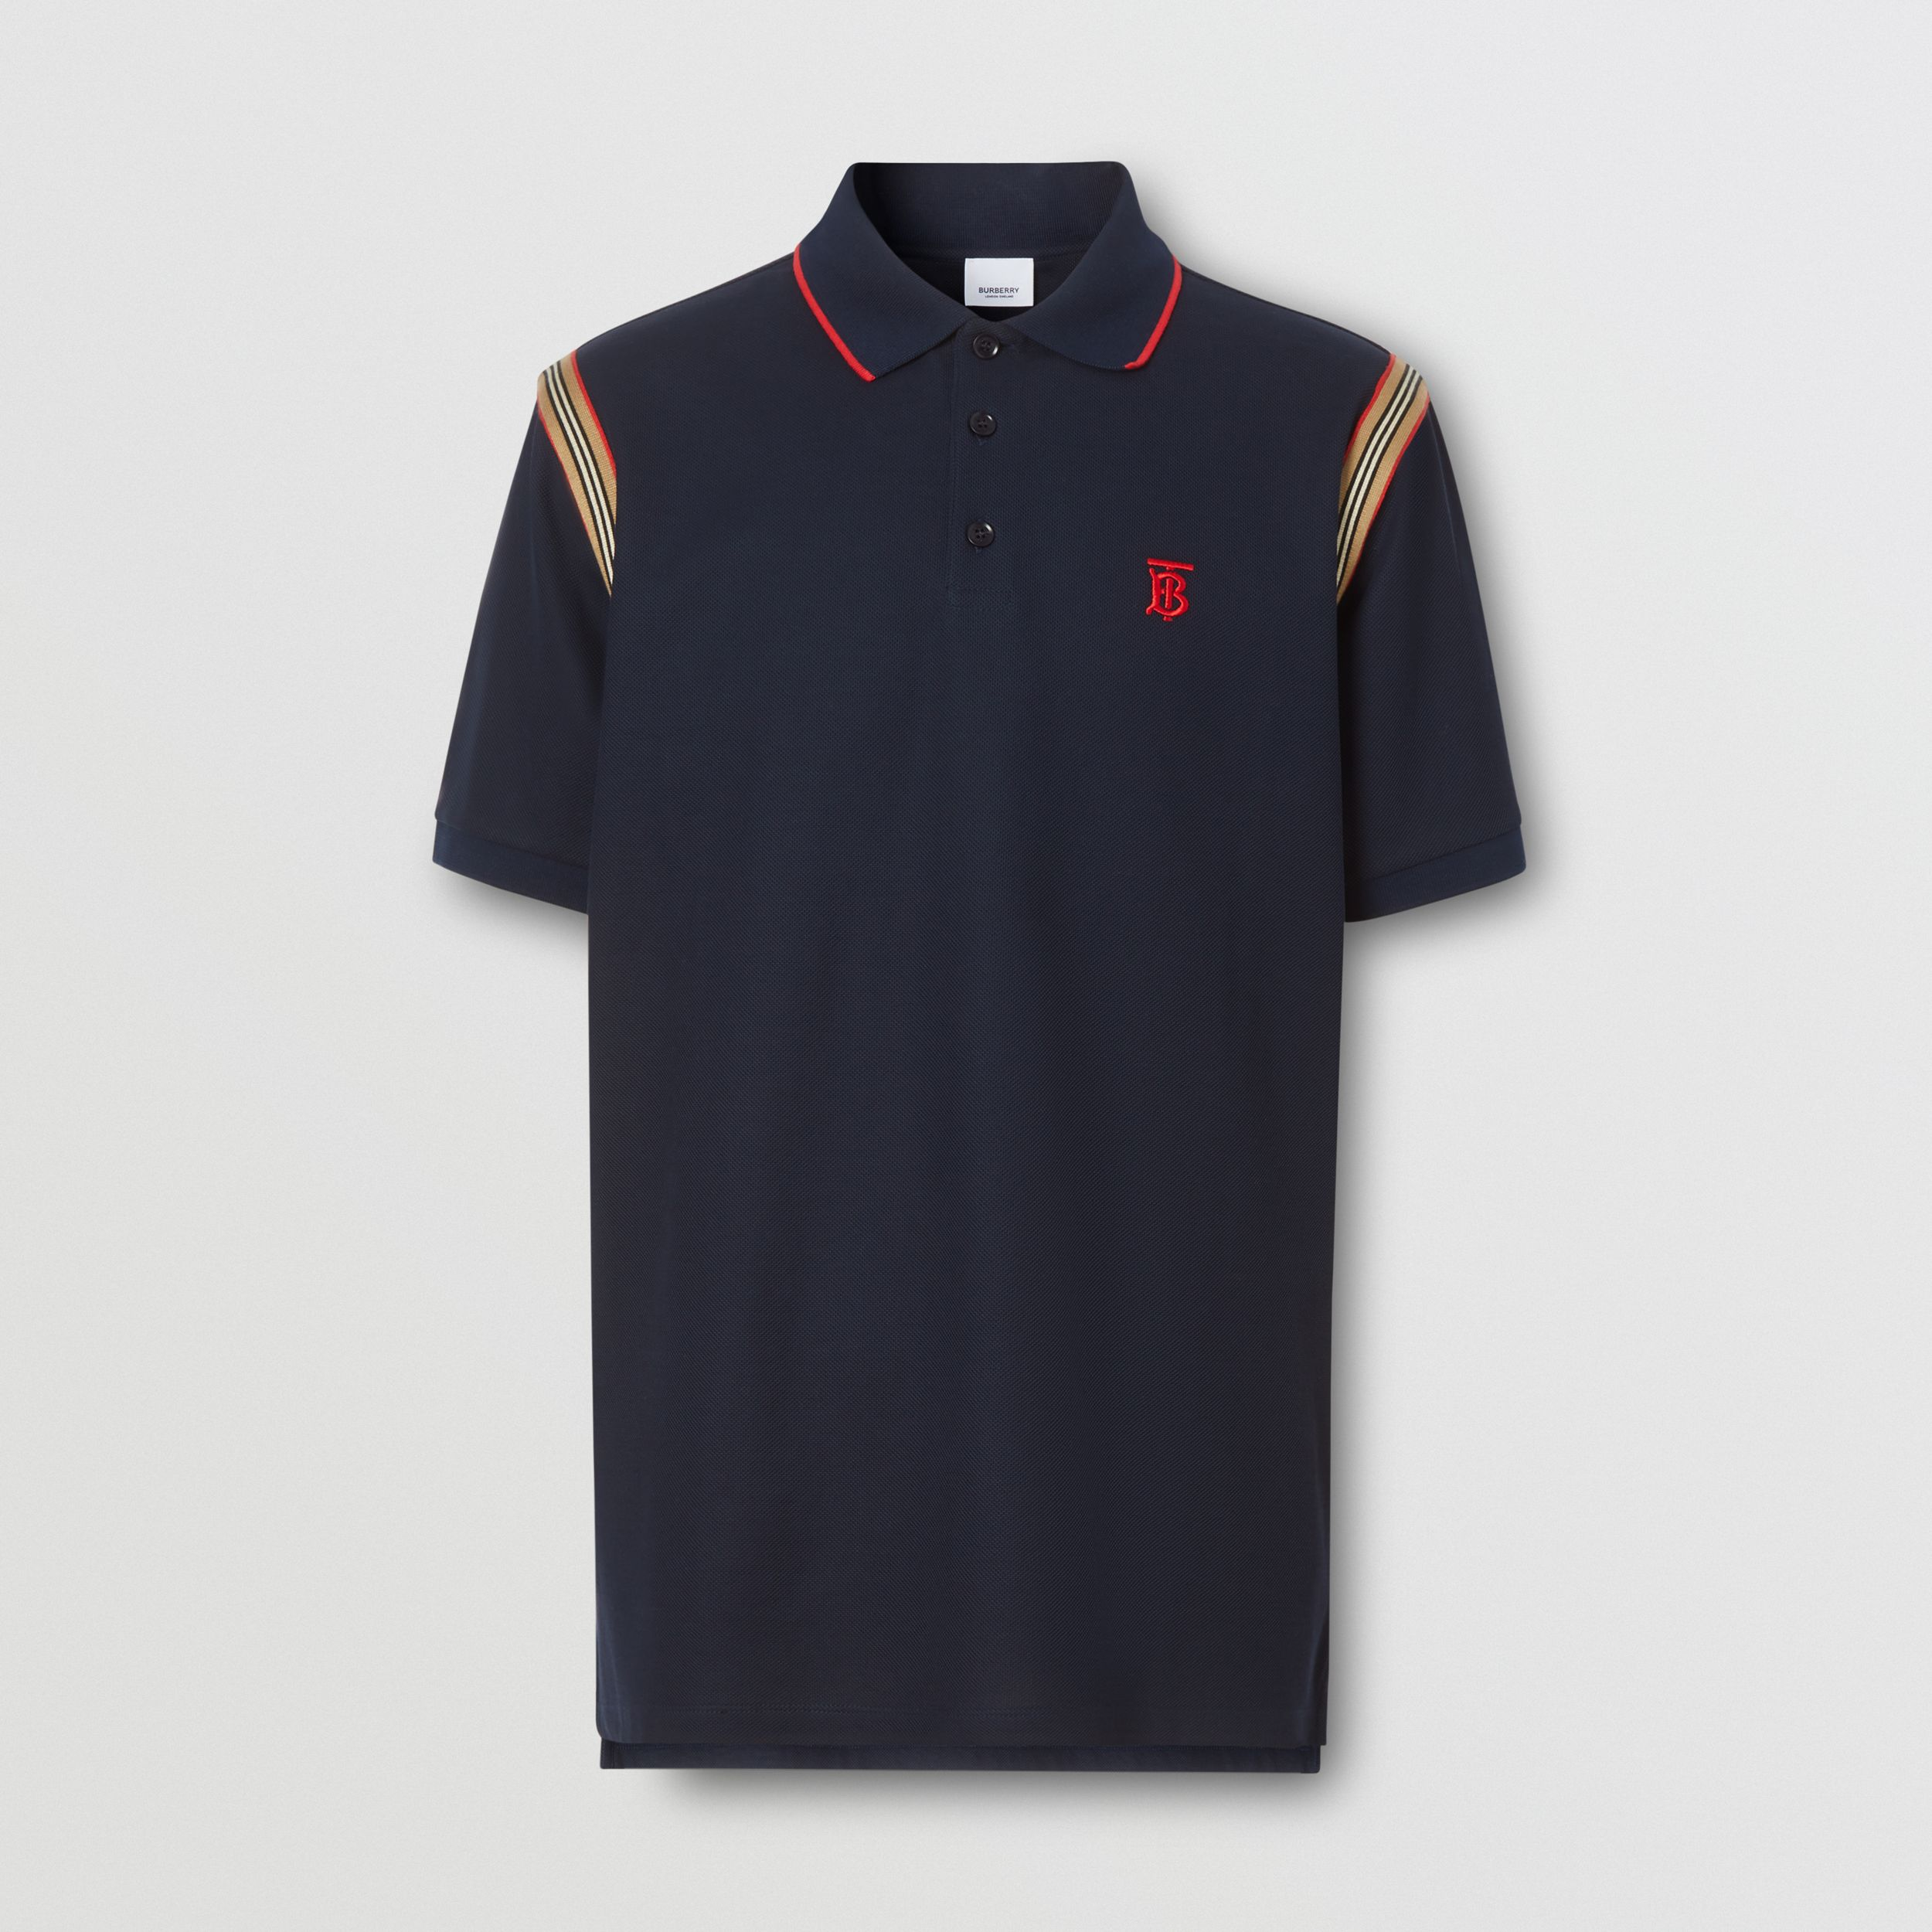 Icon Stripe Trim Monogram Motif Cotton Polo Shirt in Navy - Men | Burberry - 4